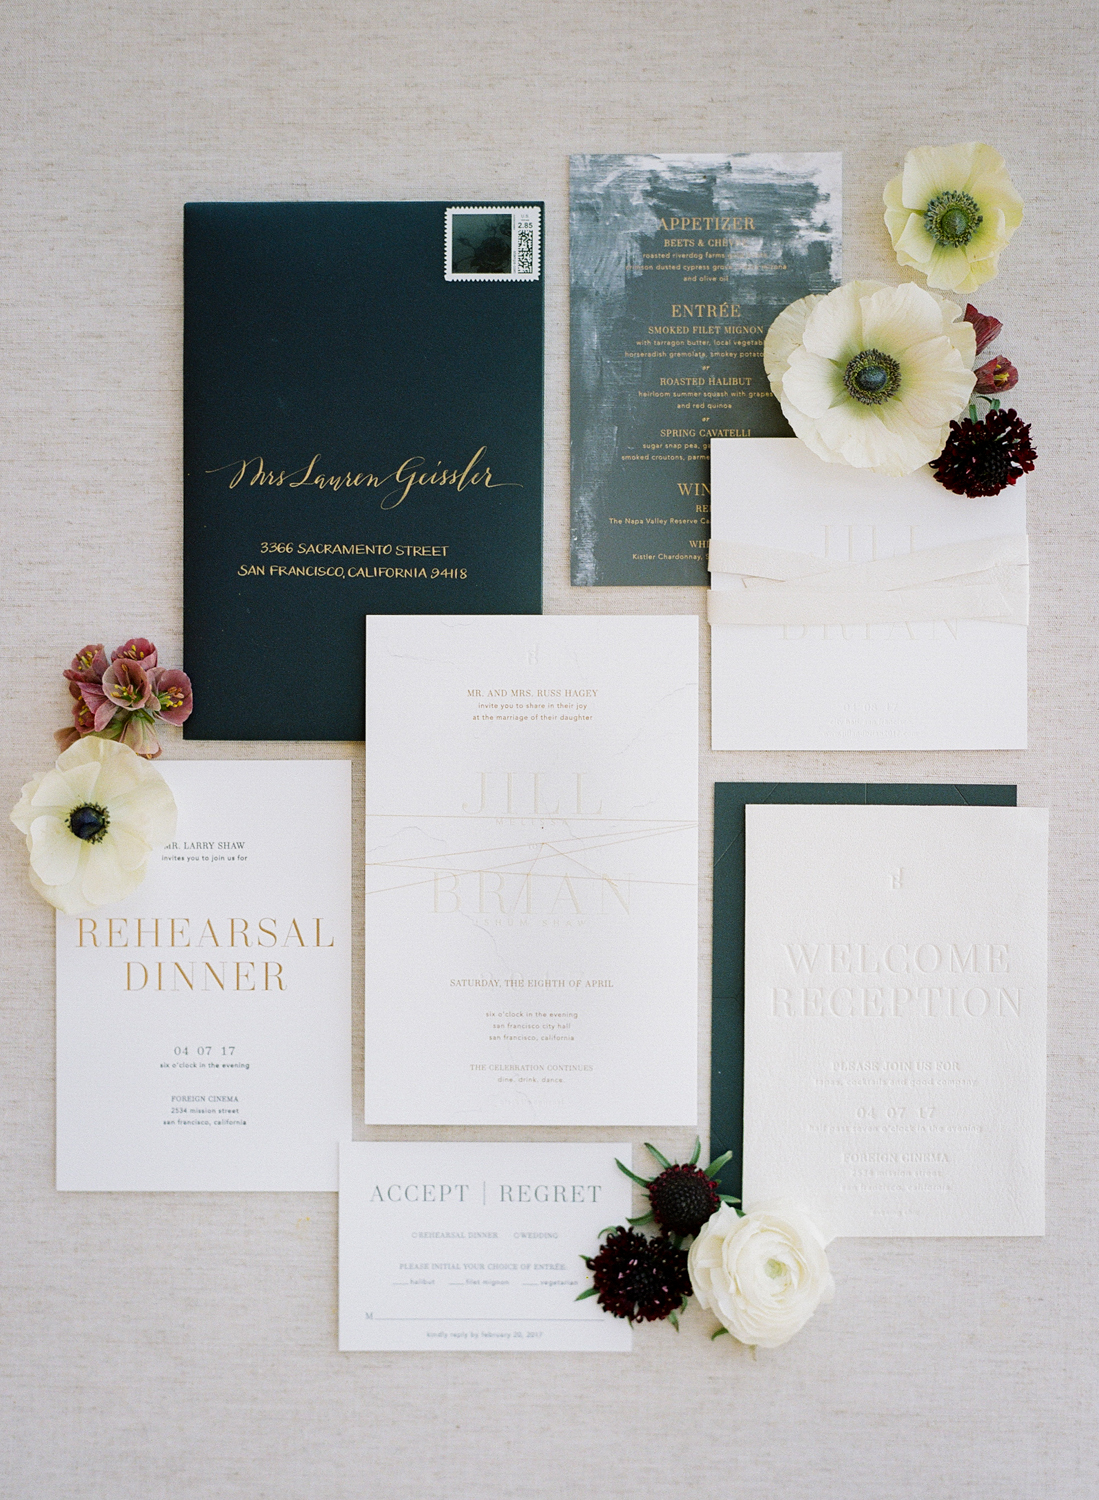 A layflat of the modern wedding invitation suit, framed by dogwoods; Sylvie Gil Photography